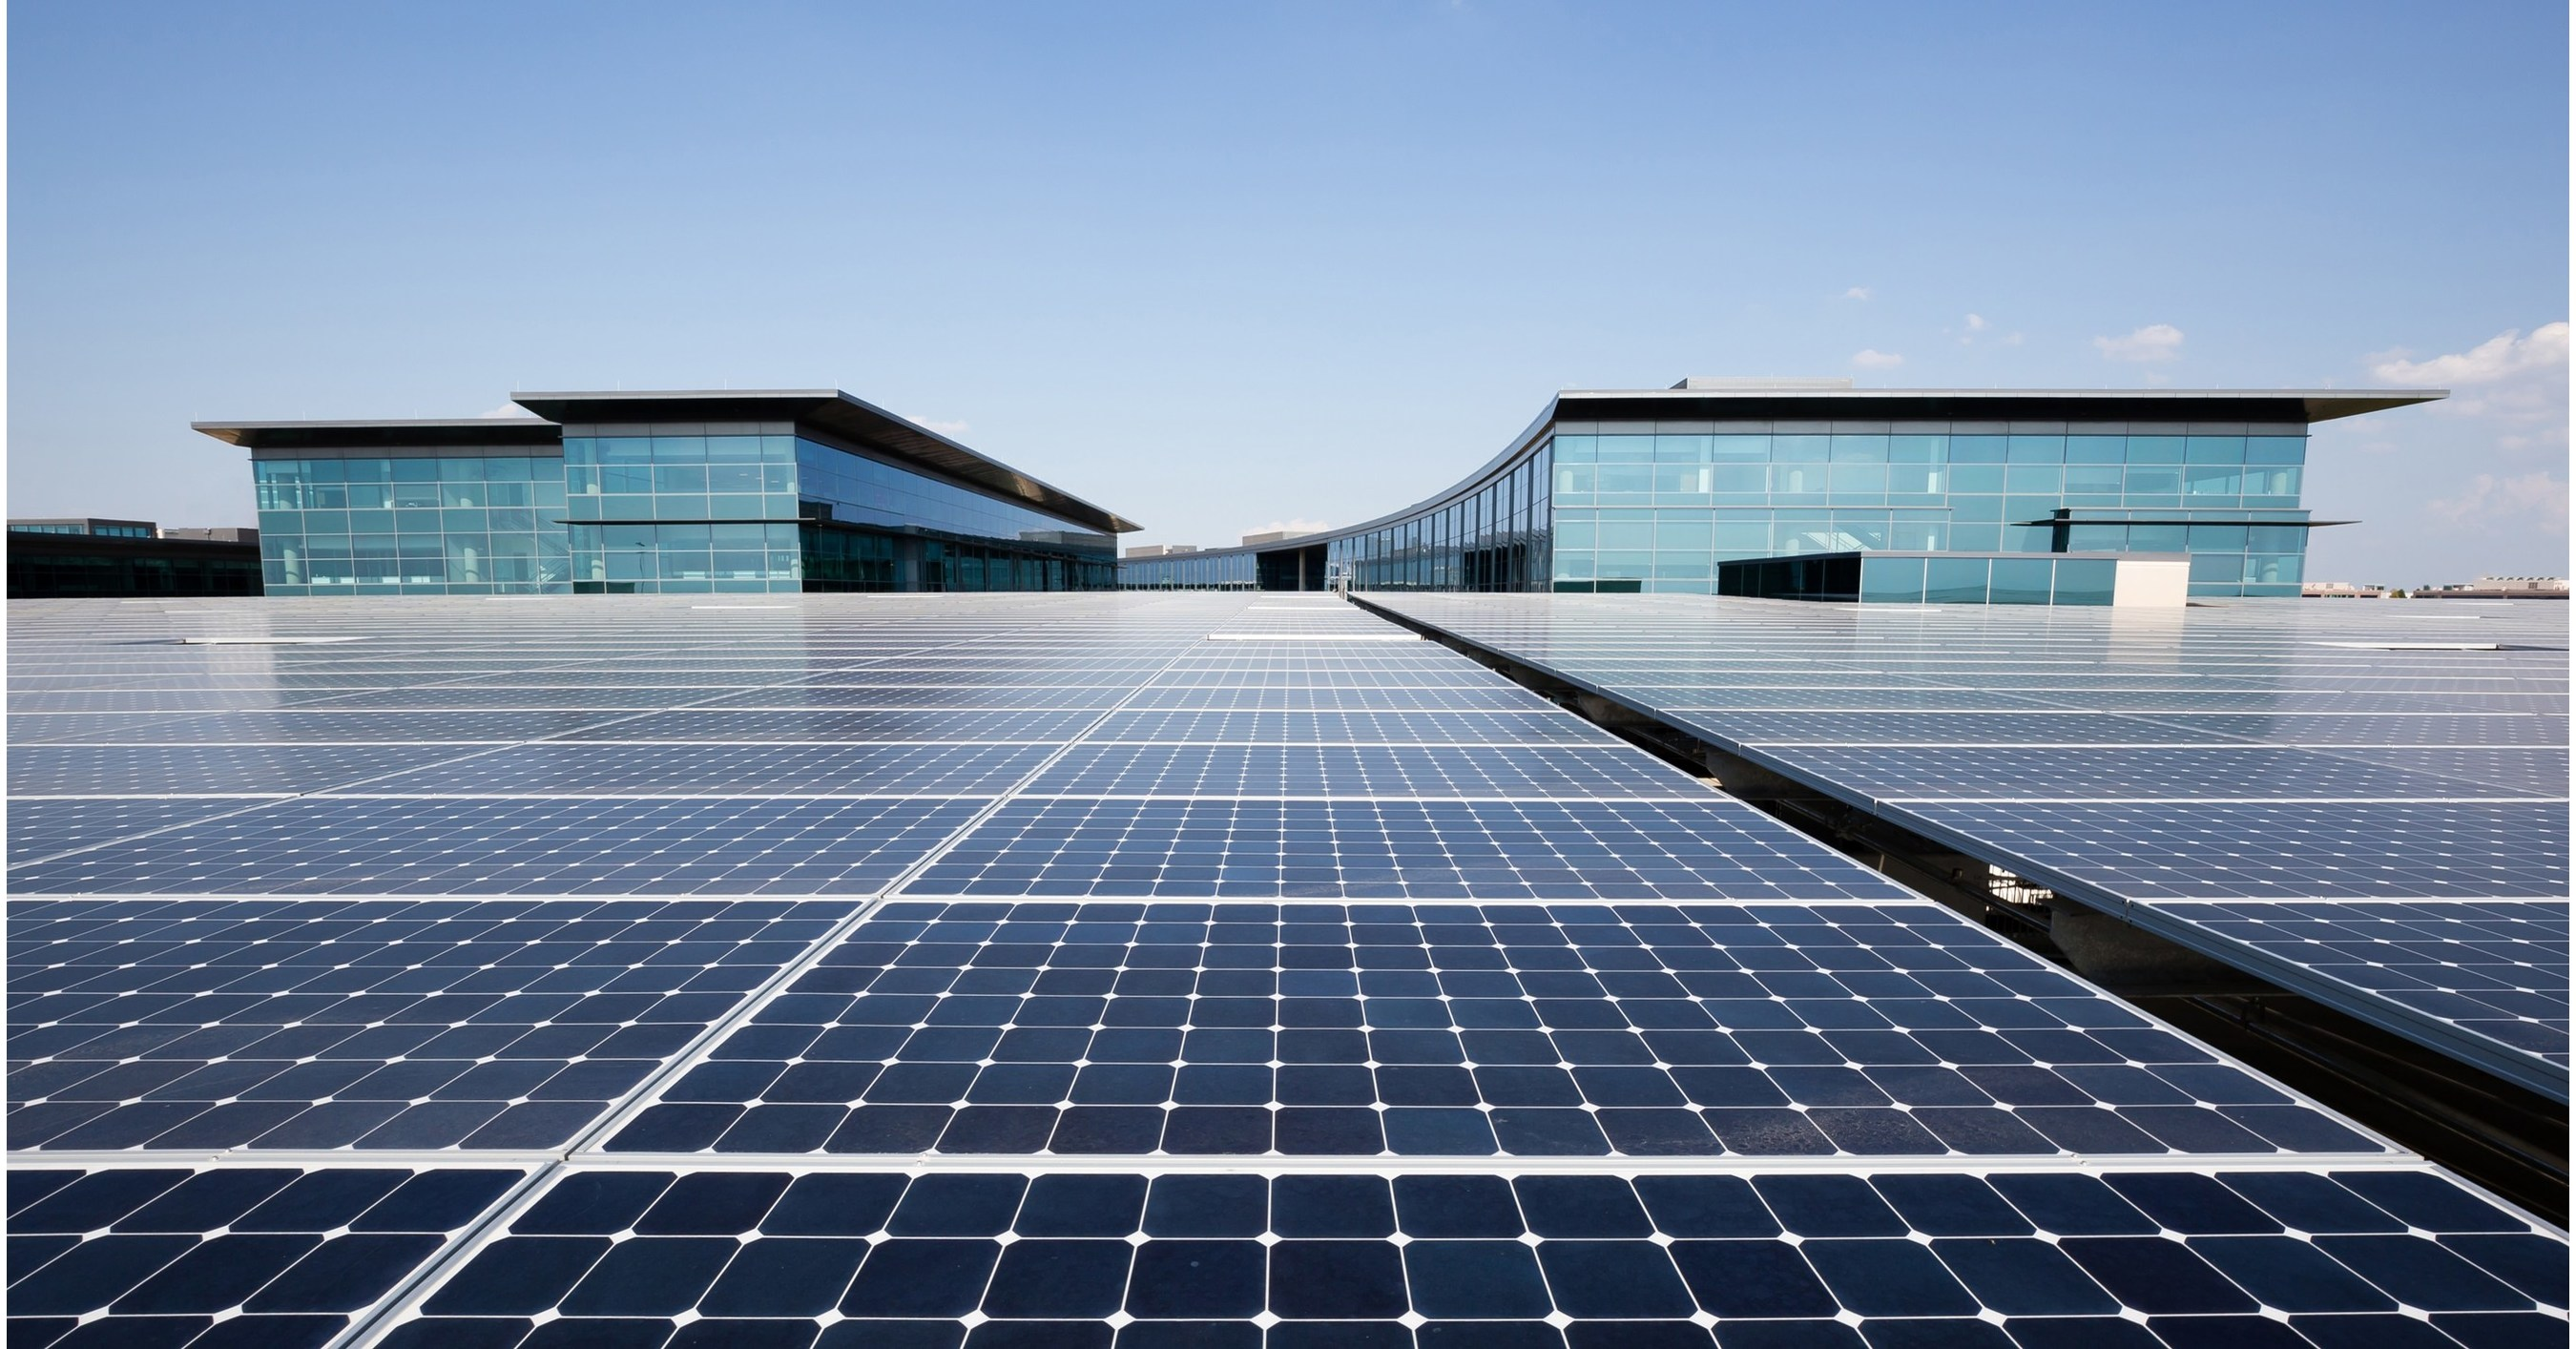 Sunpower Completes 8 79 Megawatt Solar Project At Toyota